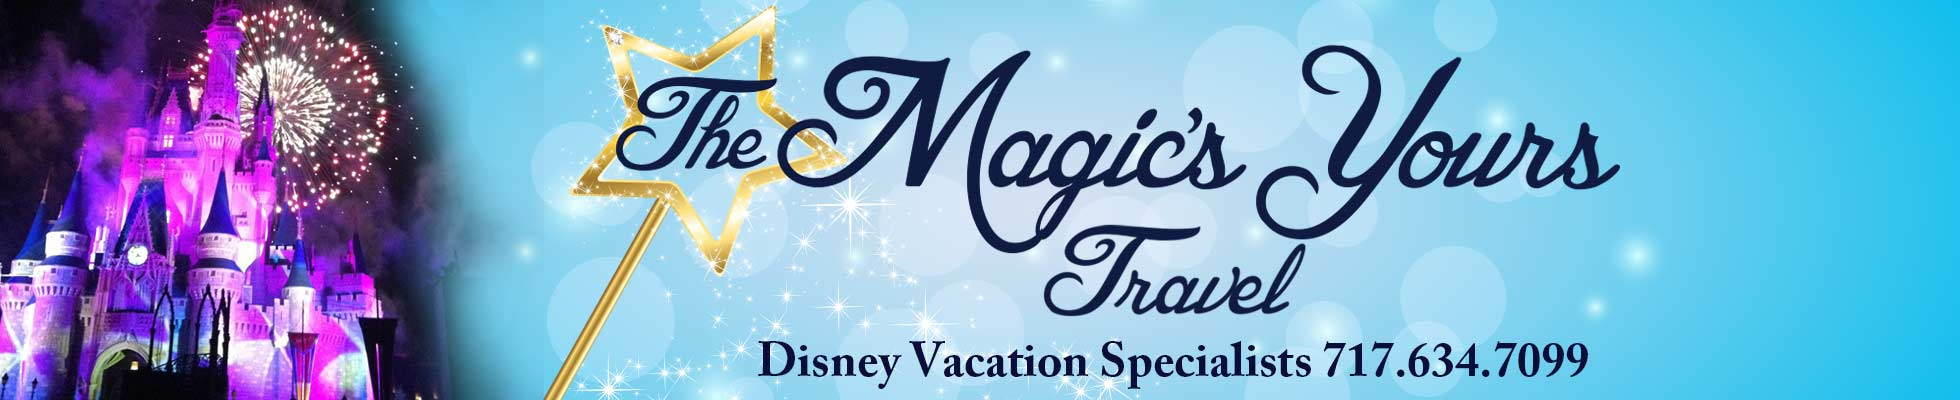 The Magics Yours Travel Agency